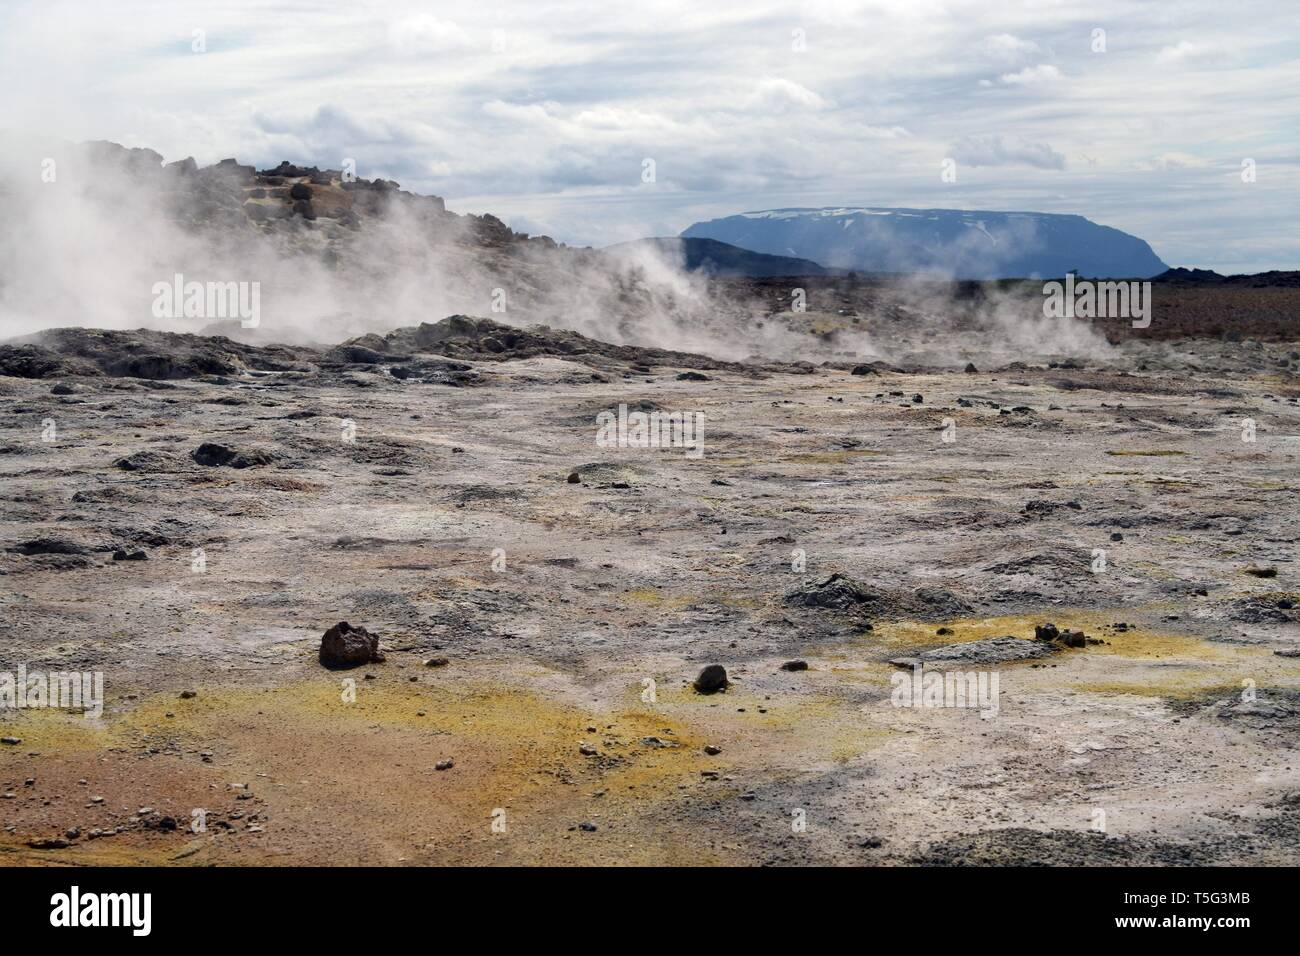 Seltun / Krysuvik (Krýsuvík): Geothermal field with fumaroles steaming gas Stock Photo